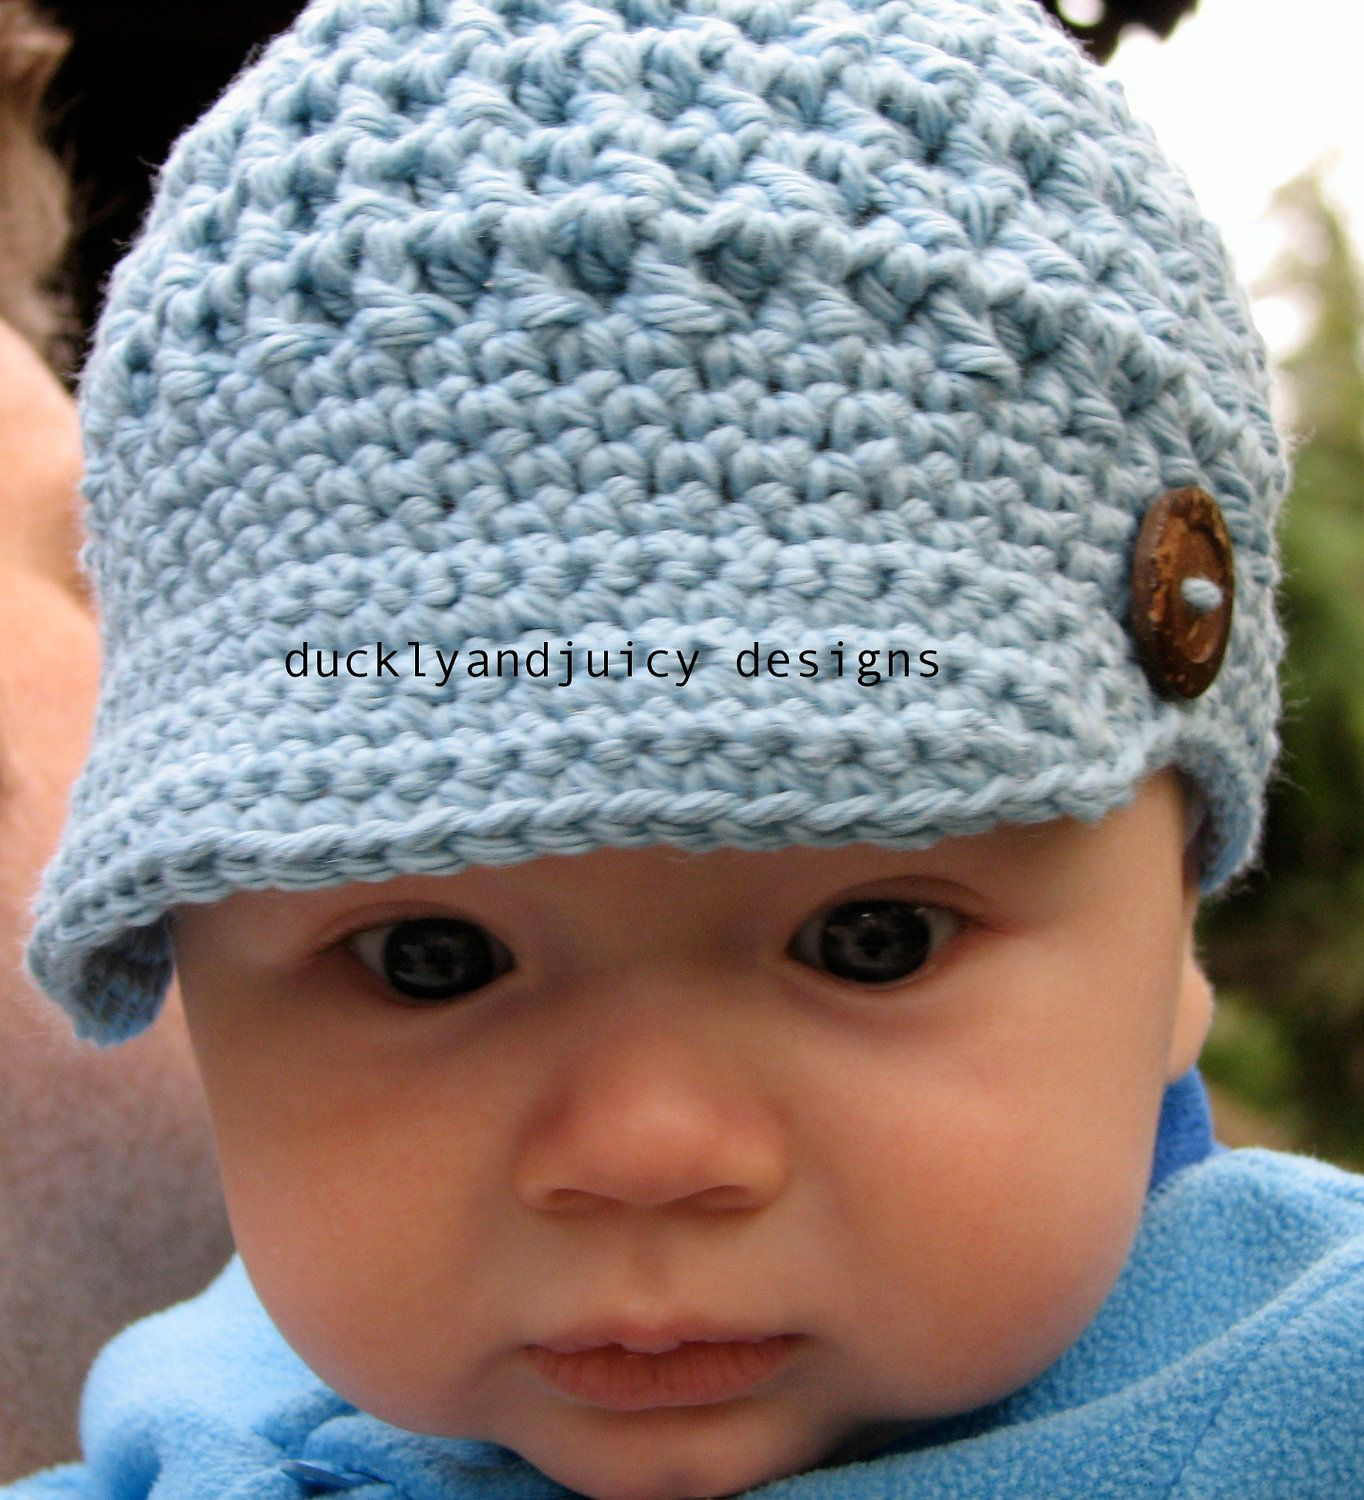 Crochet baby hat baby boy hat newsboy cap with brim and button crochet baby hat baby boy hat newsboy cap with brim and button bankloansurffo Choice Image